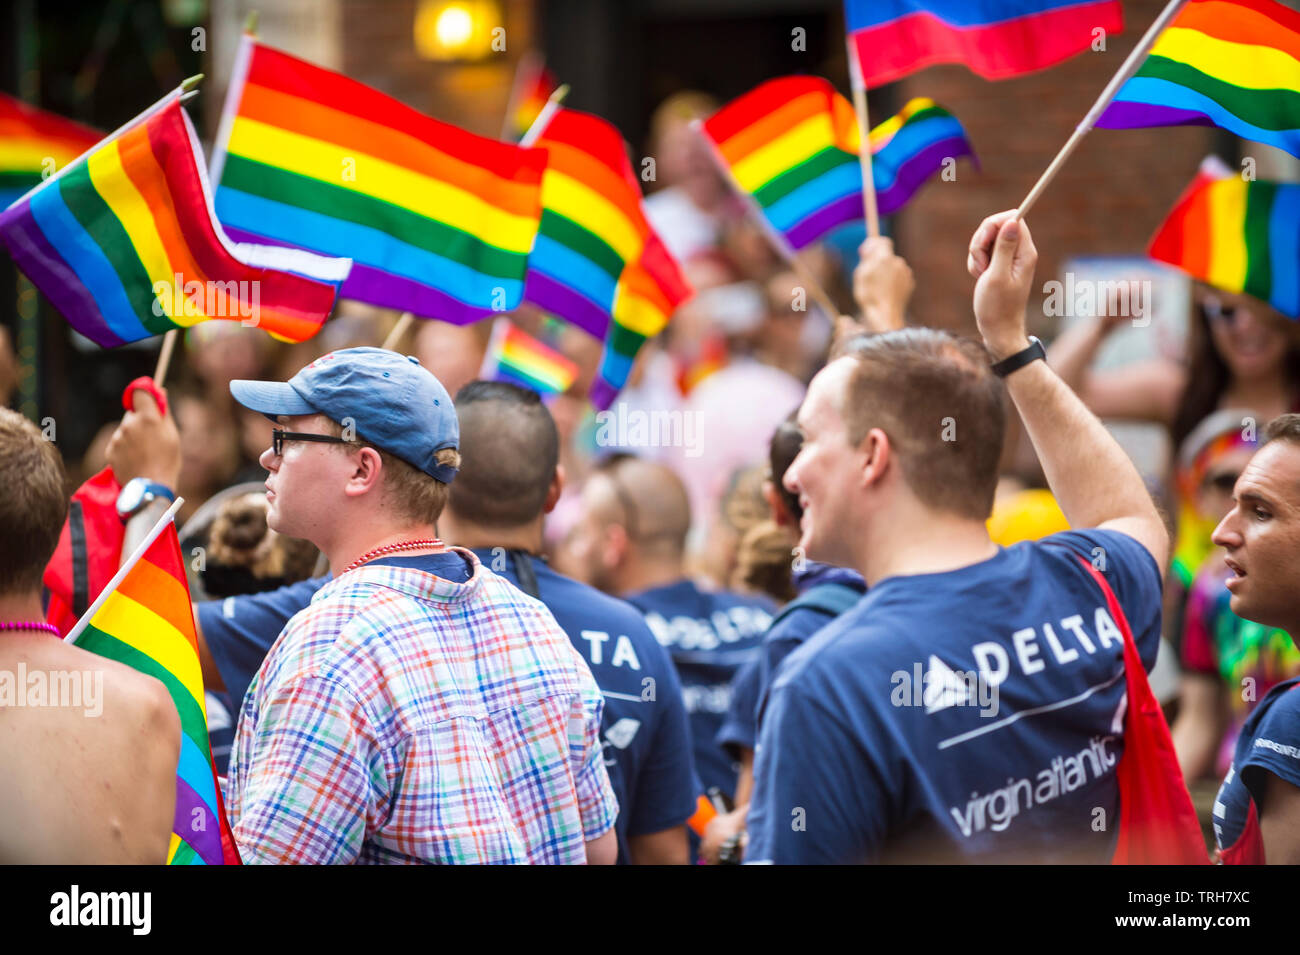 NEW YORK CITY - JUNE 25, 2017: Participants wearing shirts sponsored by Delta and Virgin Atlantic airlines wave rainbow flags in the gay Pride parade. - Stock Image